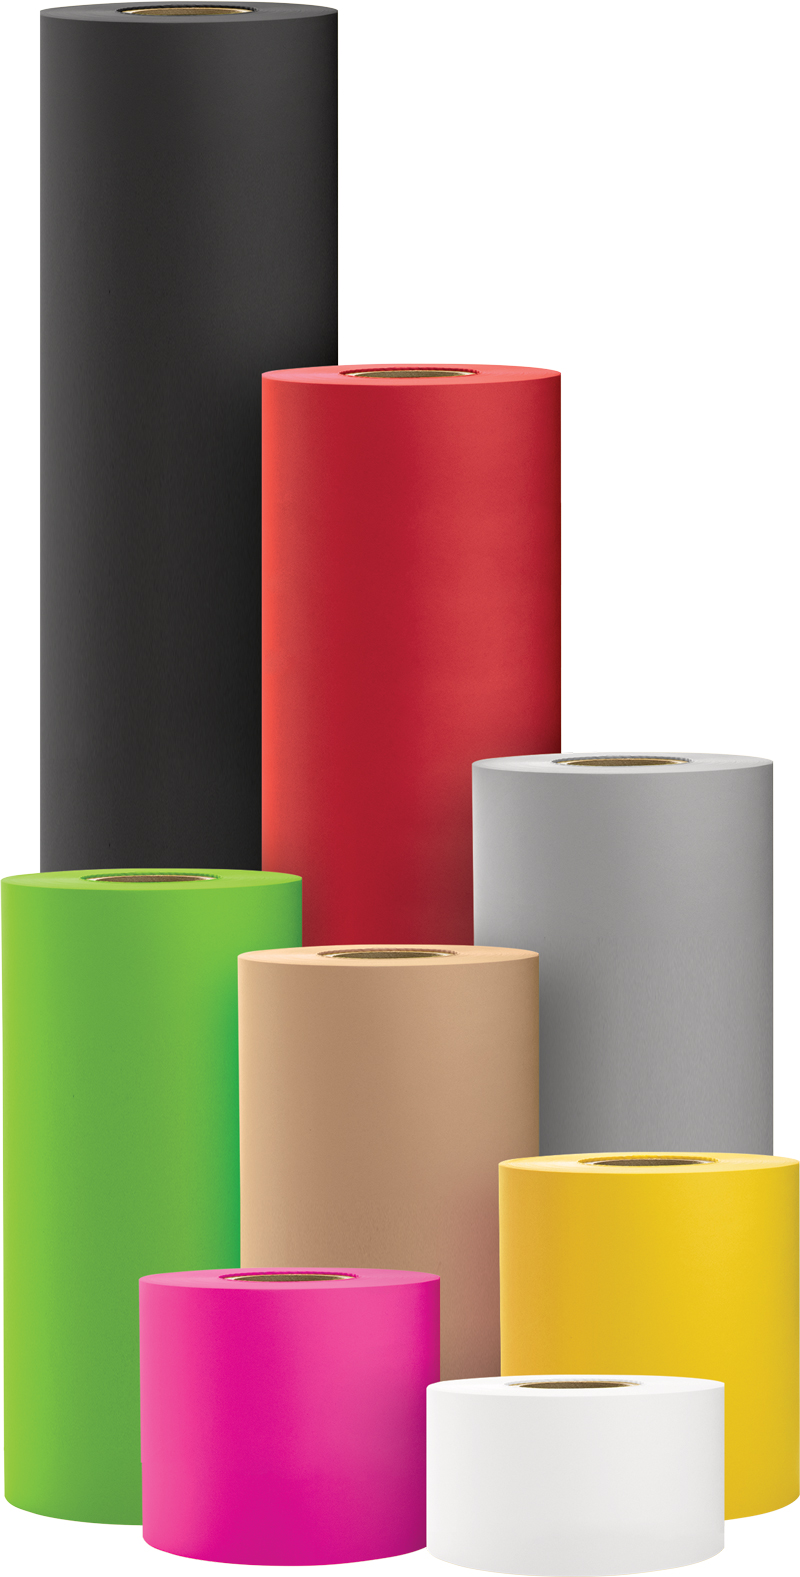 Various colored SatinPack counter rolls